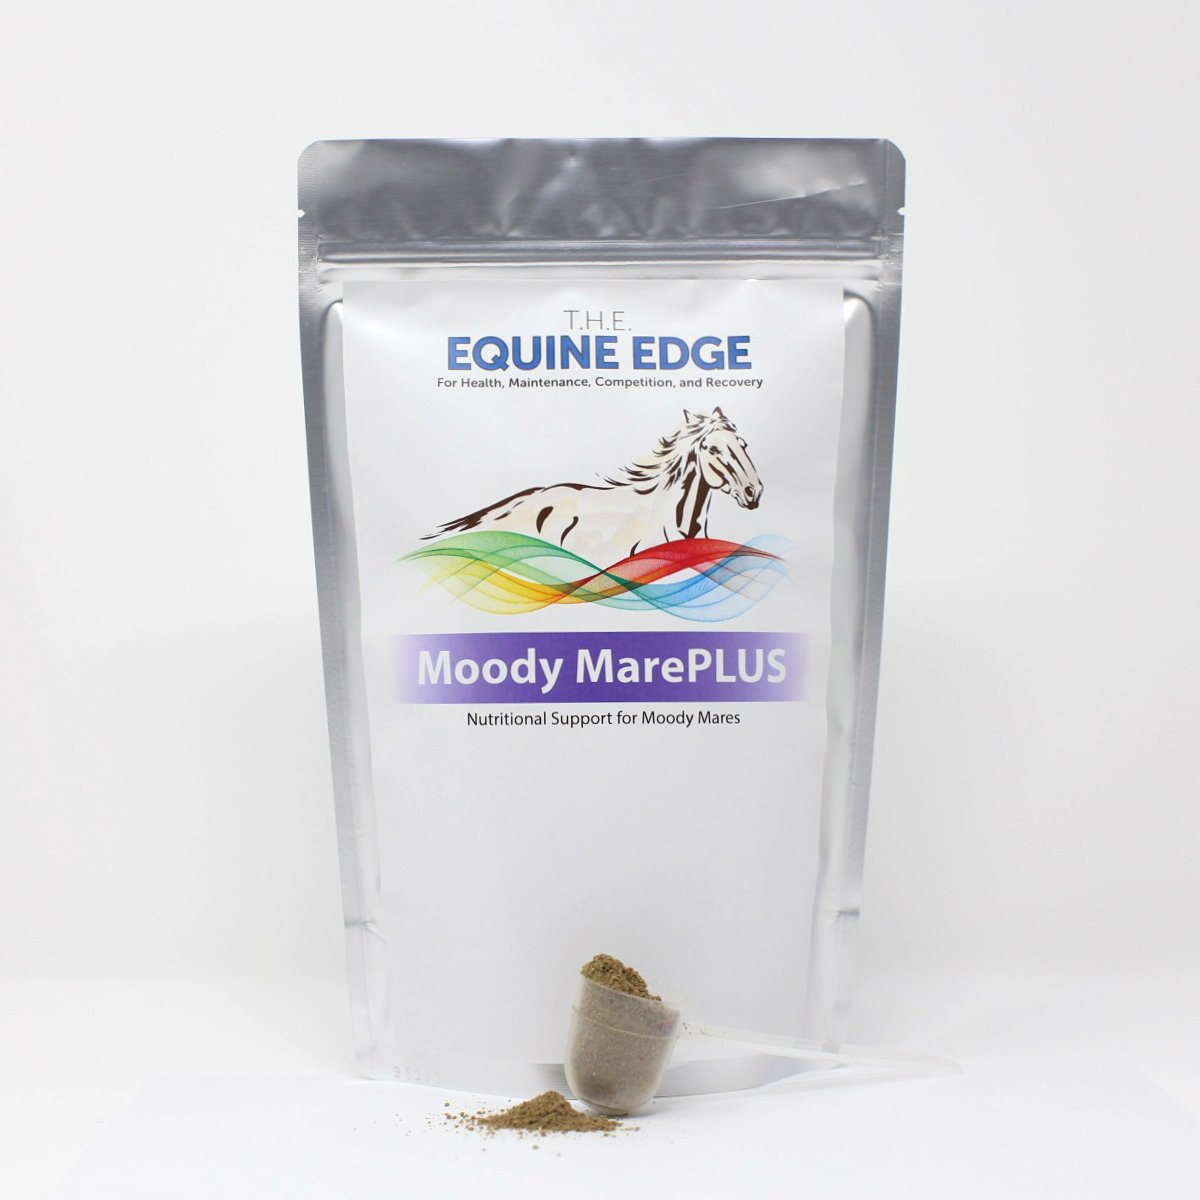 T.H.E. Equine Edge Moody MarePLUS - Extra Moody Mare, Gelding Calming Supplement, 30 Servings